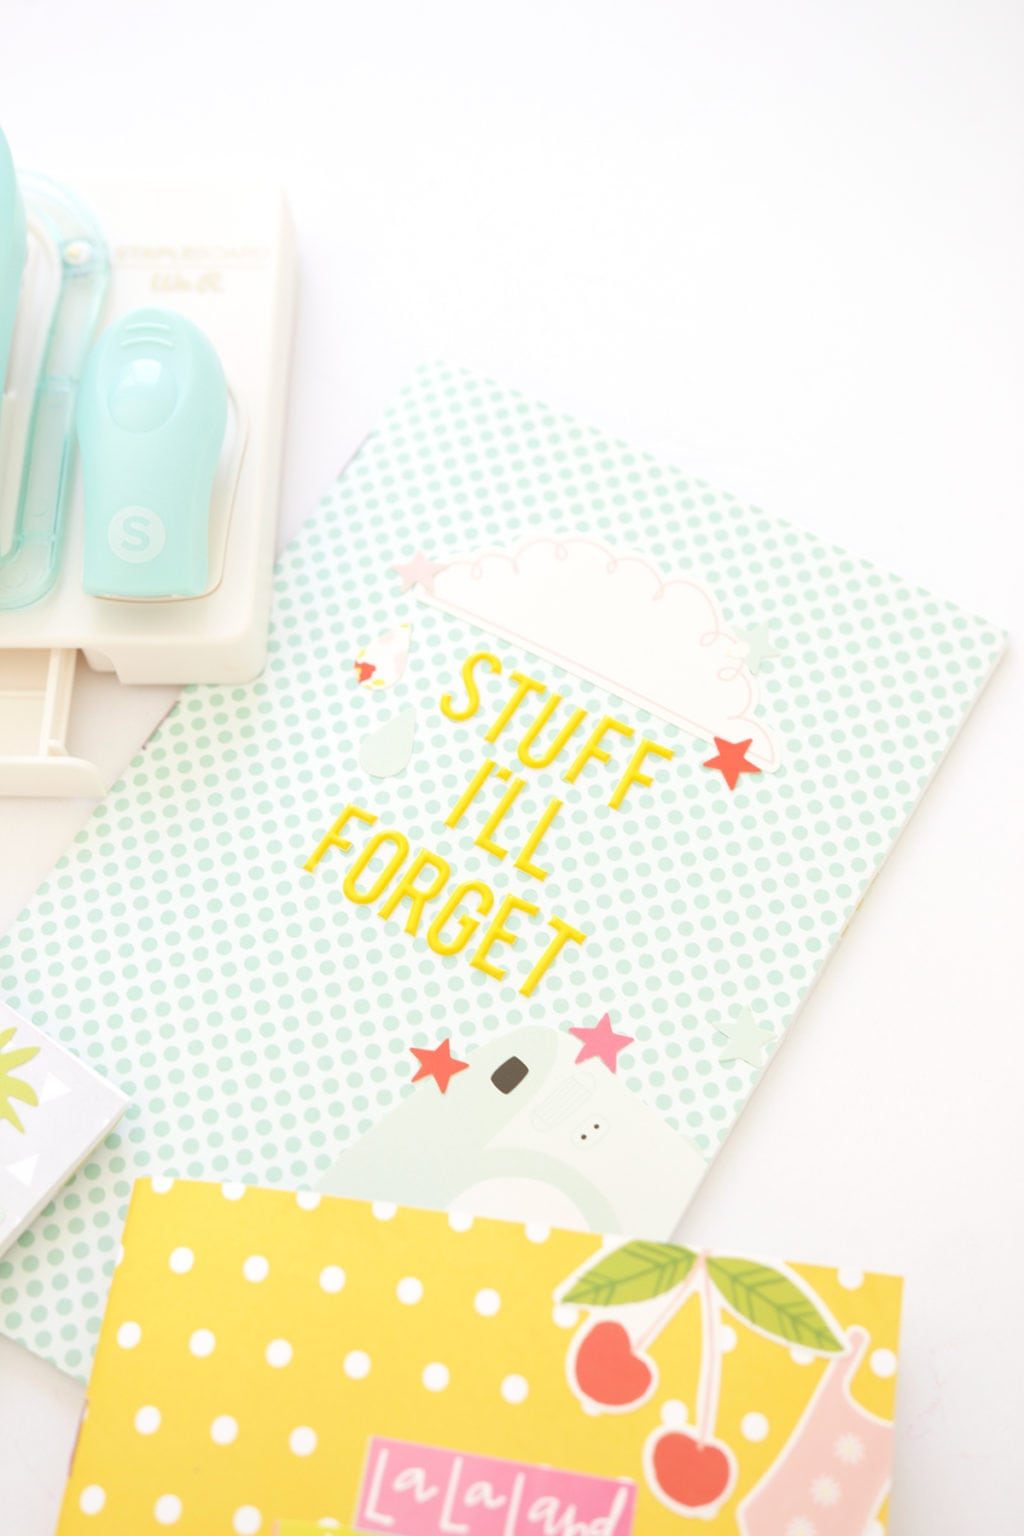 Introducing the new We R Memory Keepers Staple Board that let's you staple anywhere on the page. Use it to create these Easy Stapled Notebooks in minutes